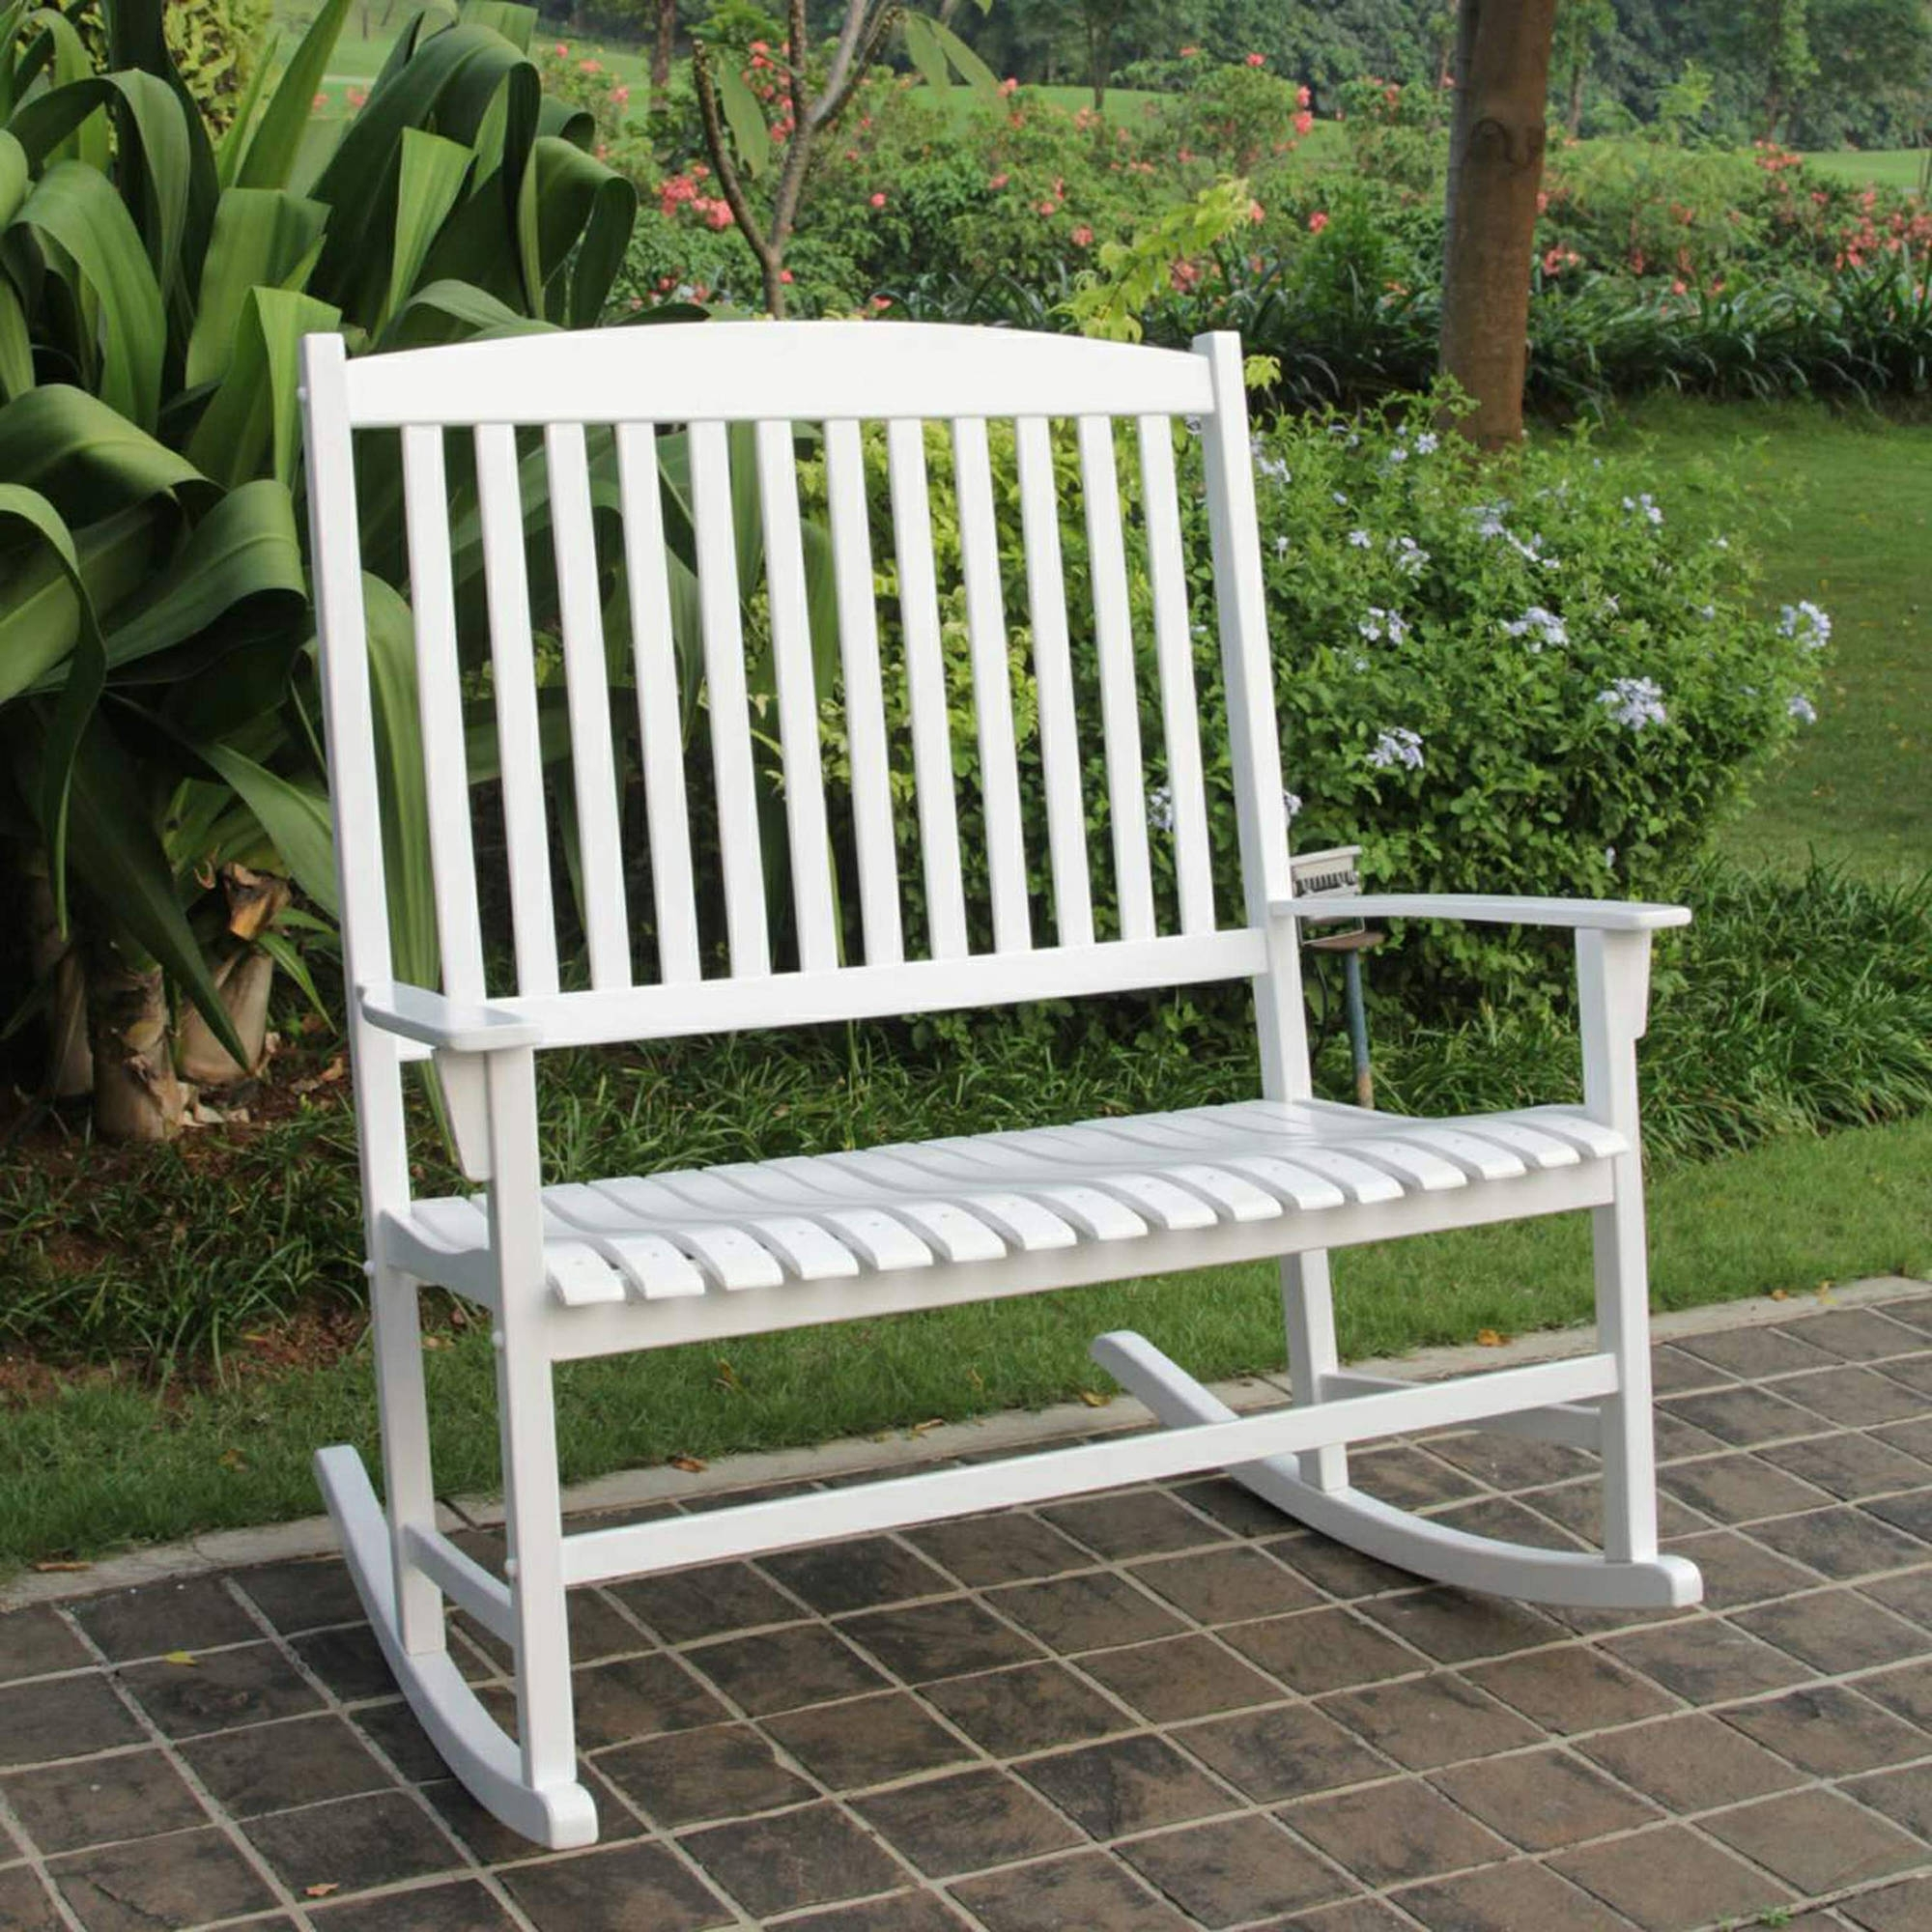 2019 Mainstays Outdoor Double Rocking Chair White Solid Hardwood Wide Regarding Modern Patio Rocking Chairs (View 1 of 20)